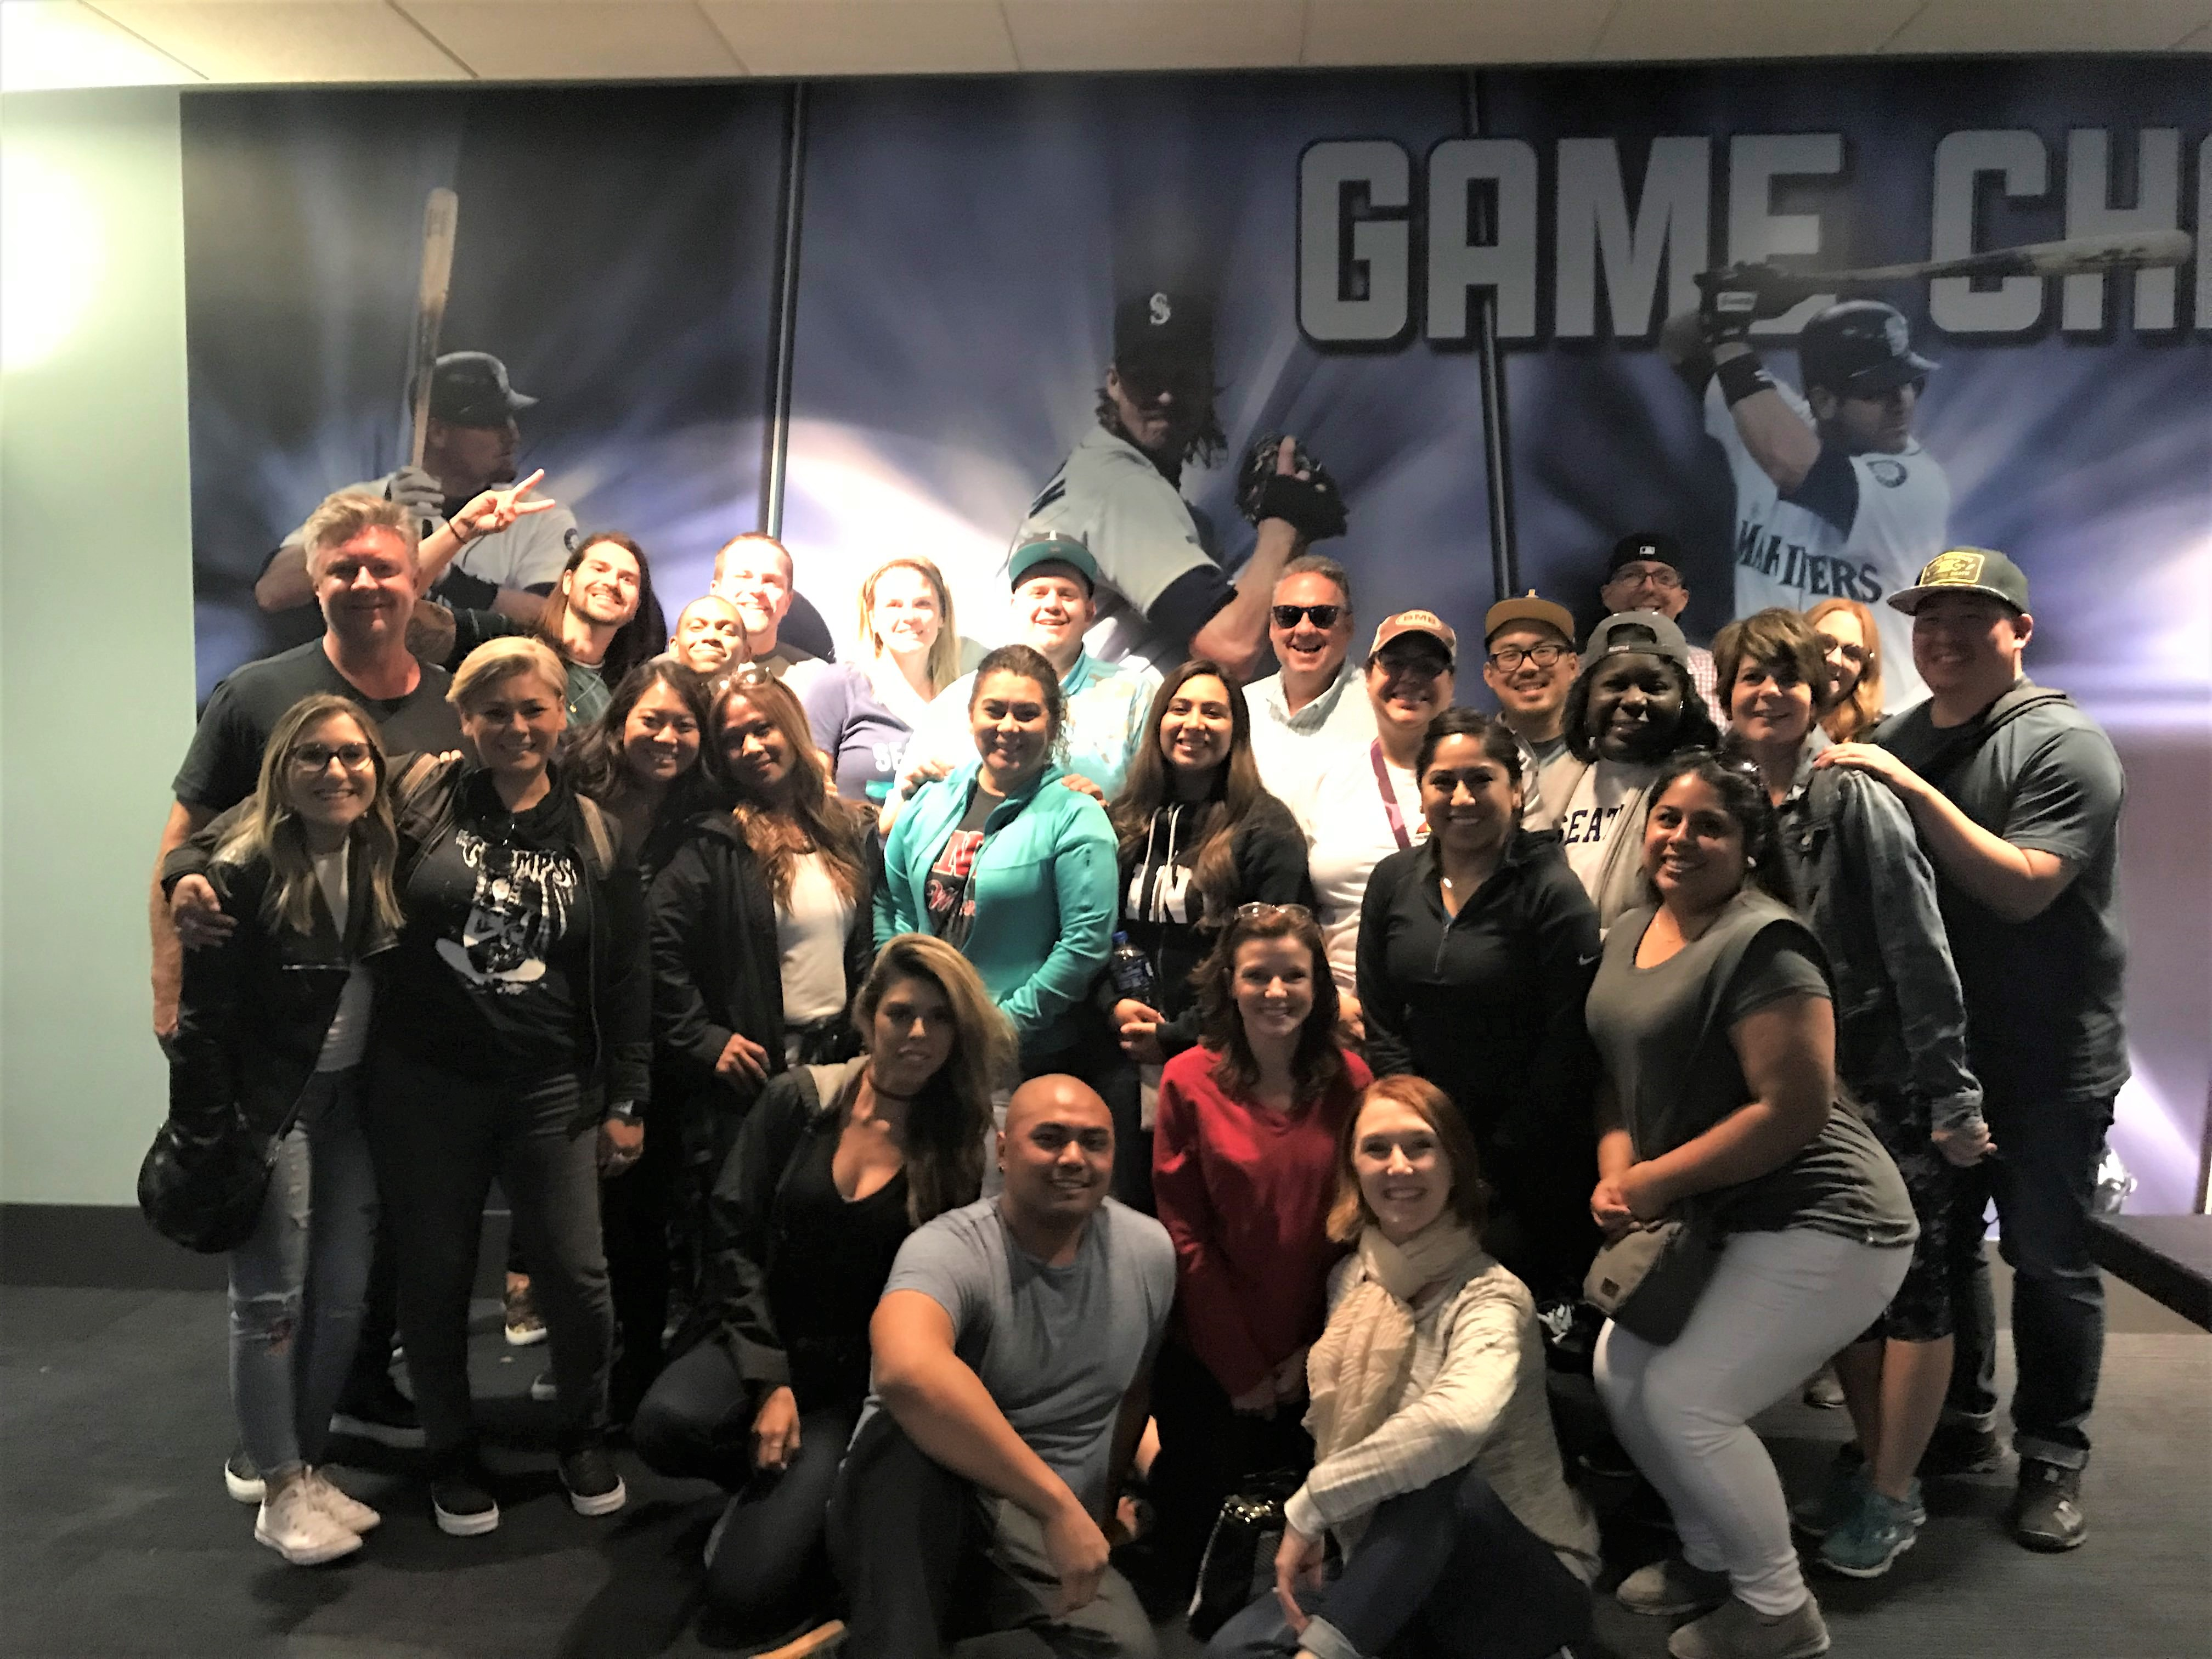 Mariners Game Group Photo